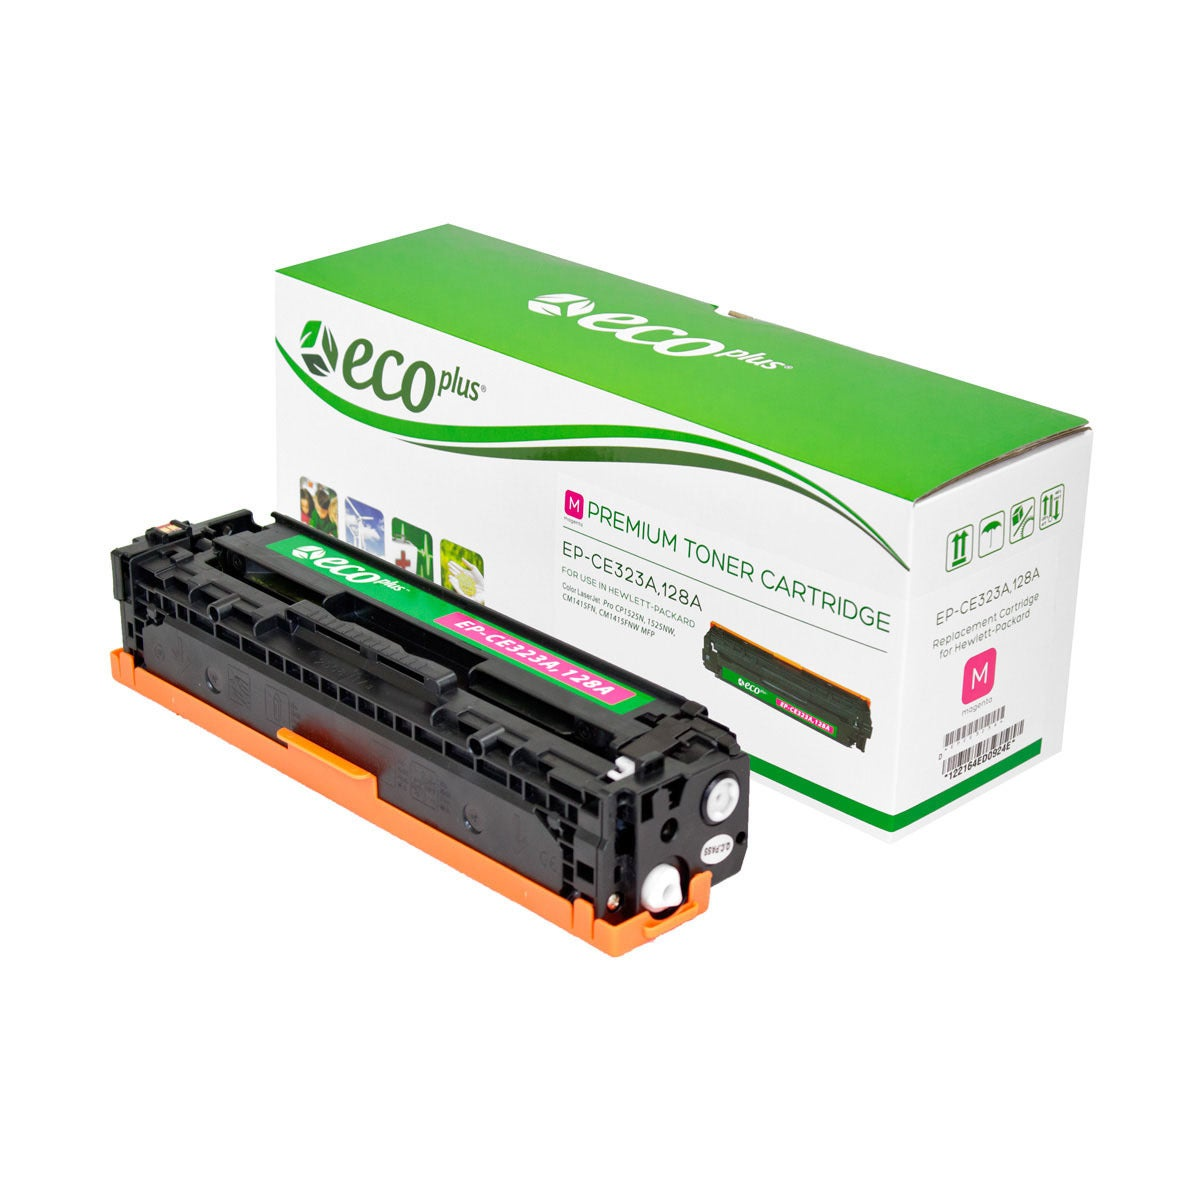 Cicso Independent EPCE323A Ecoplus Reman Toner Cartridge ...